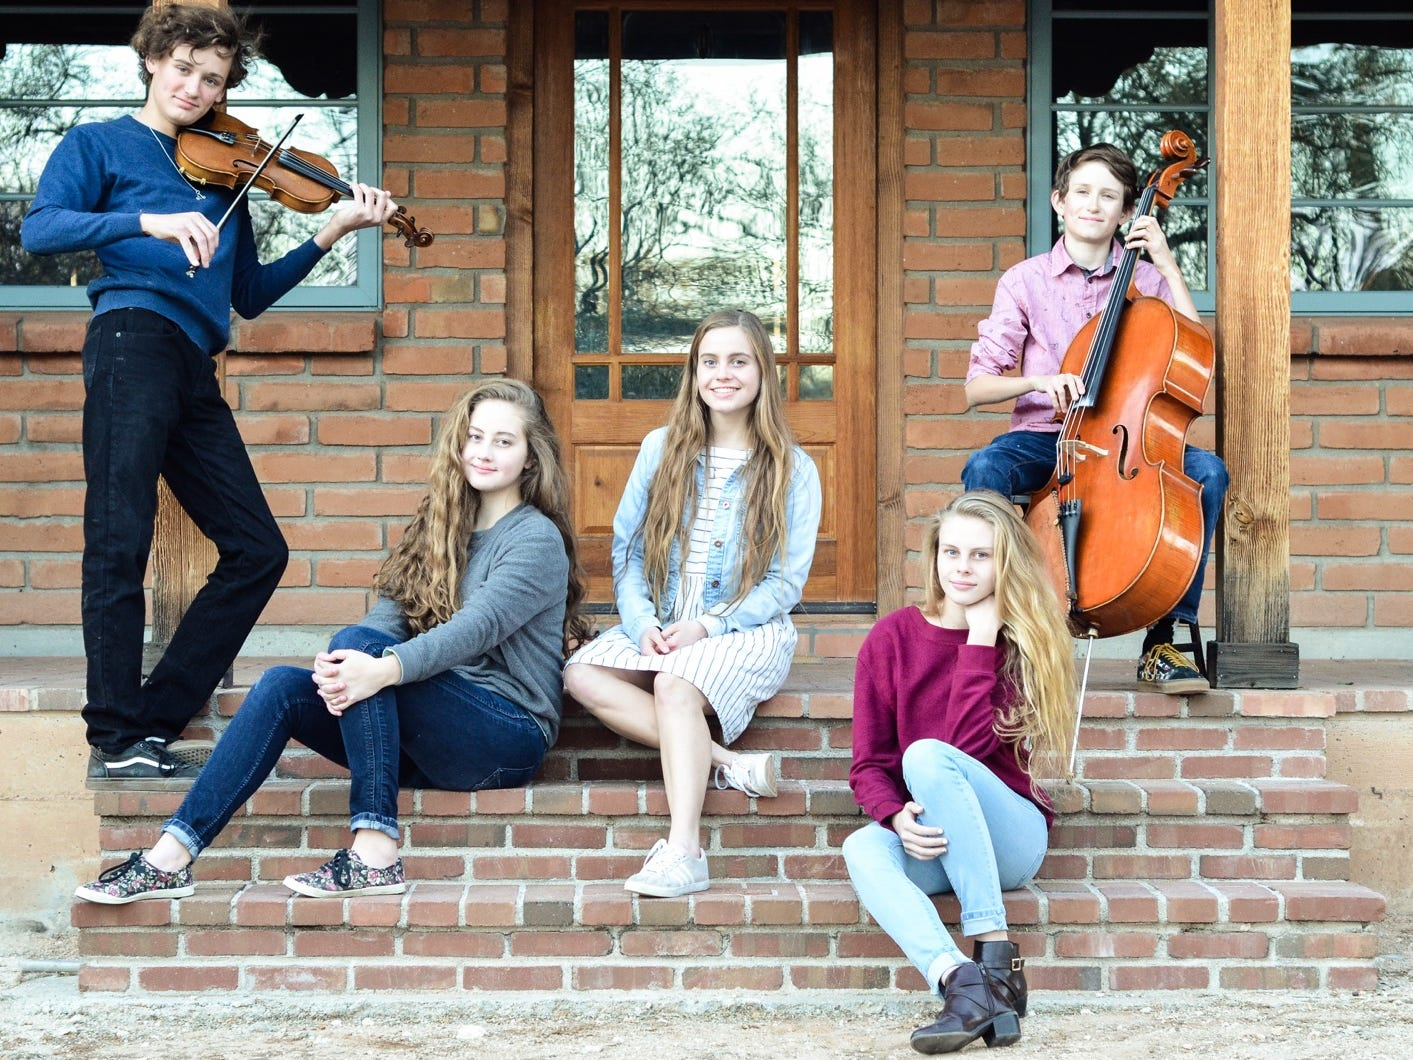 Copper Wren (left to right): Will MacDonald,17; Alivea Addleman, 14; Ava Addleman, 18; Angel Addleman, 17; Lee MacDonald, 14.